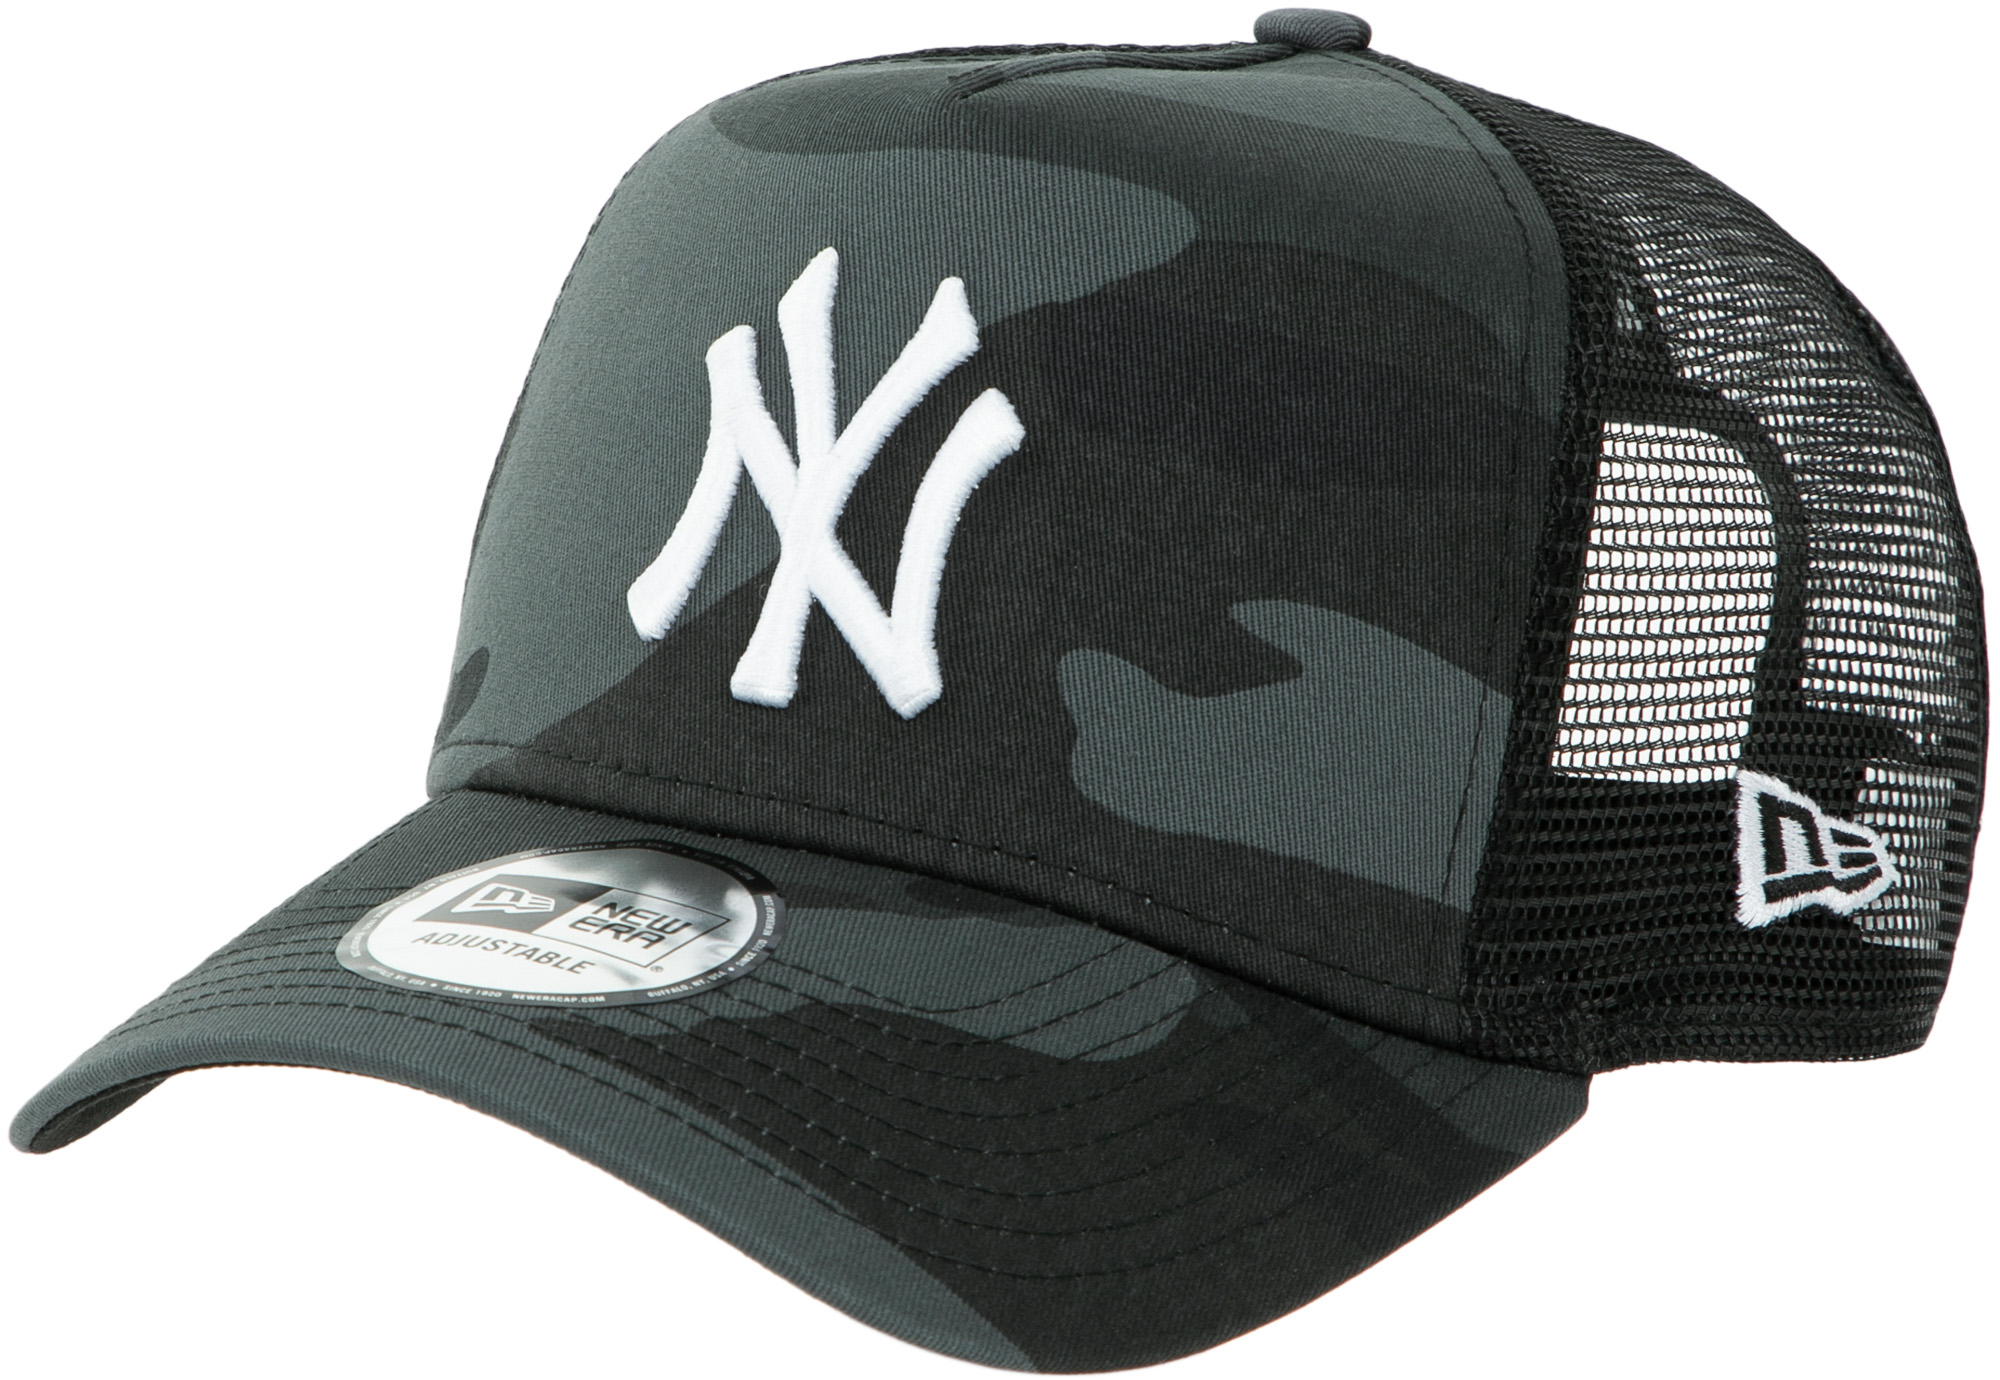 цена New Era Бейсболка мужская New Era New York Yankees онлайн в 2017 году